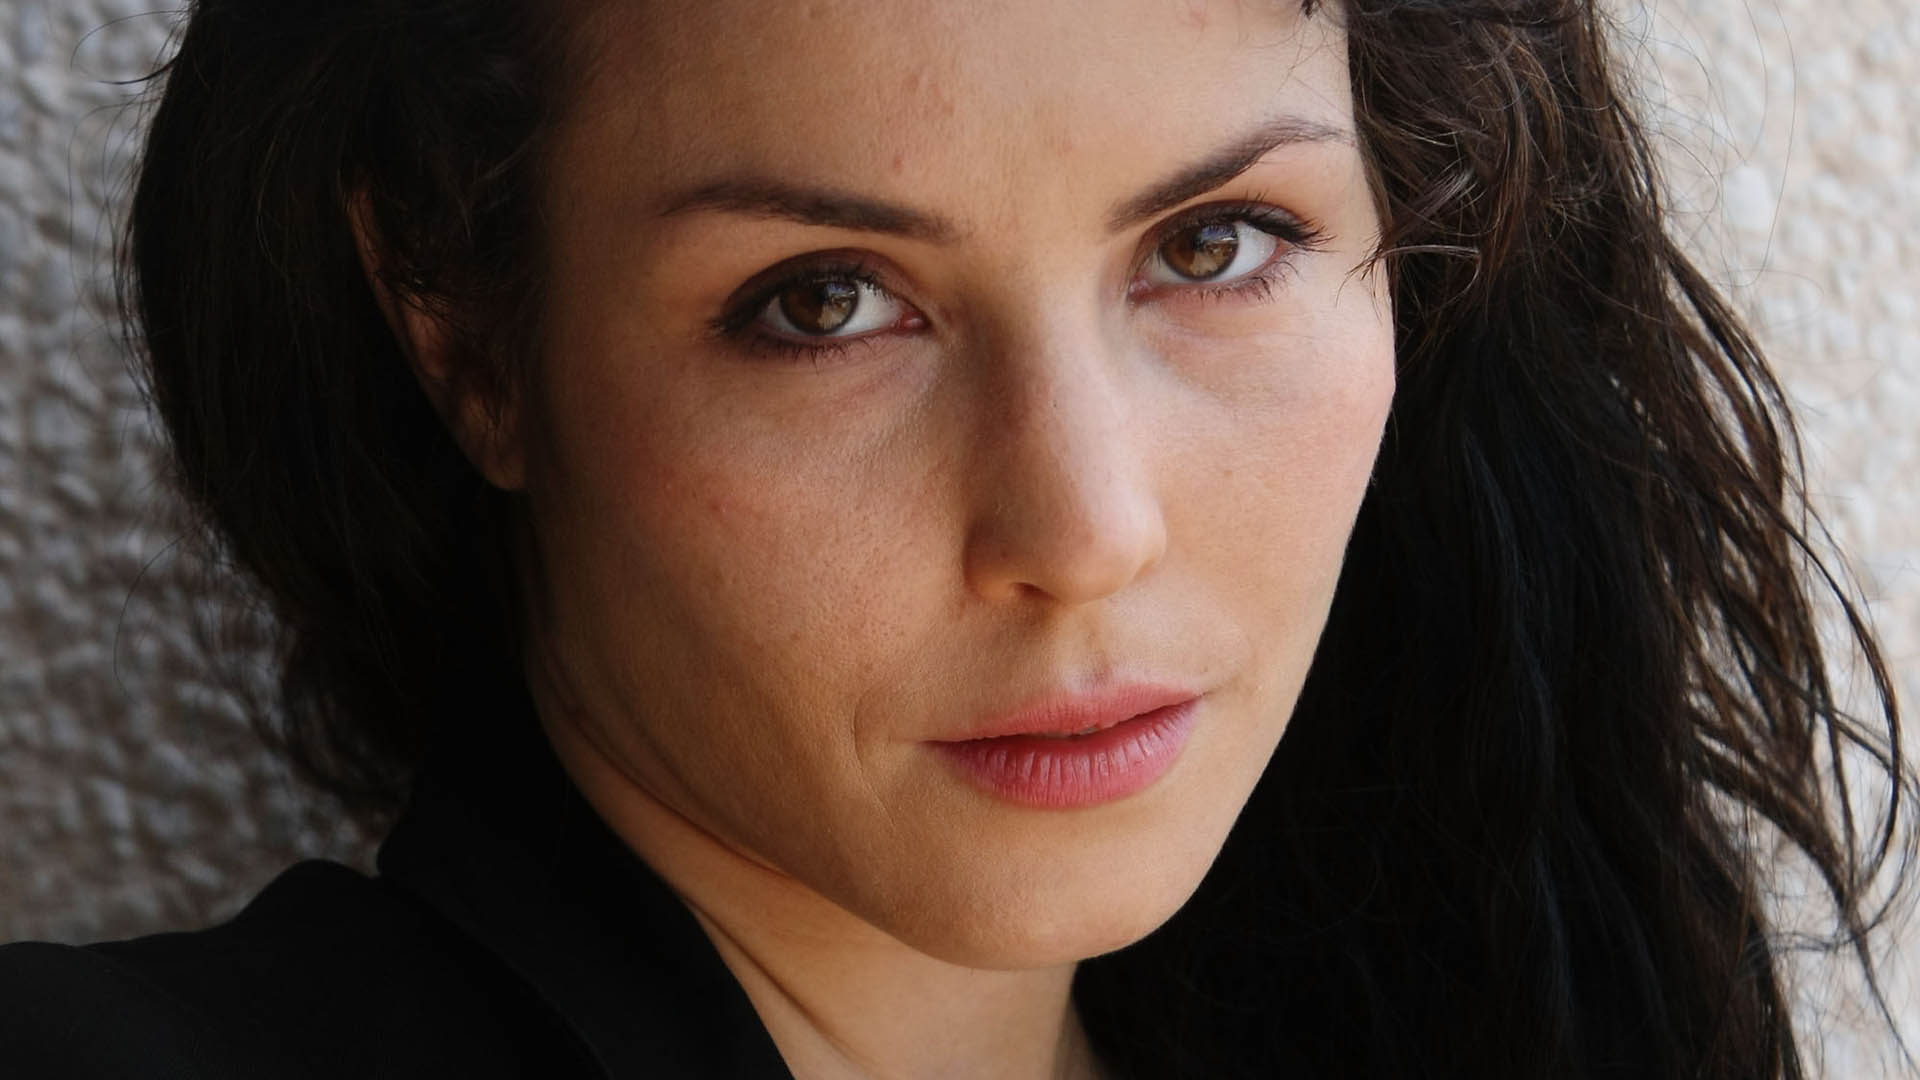 1920x1080 - Noomi Rapace Wallpapers 19